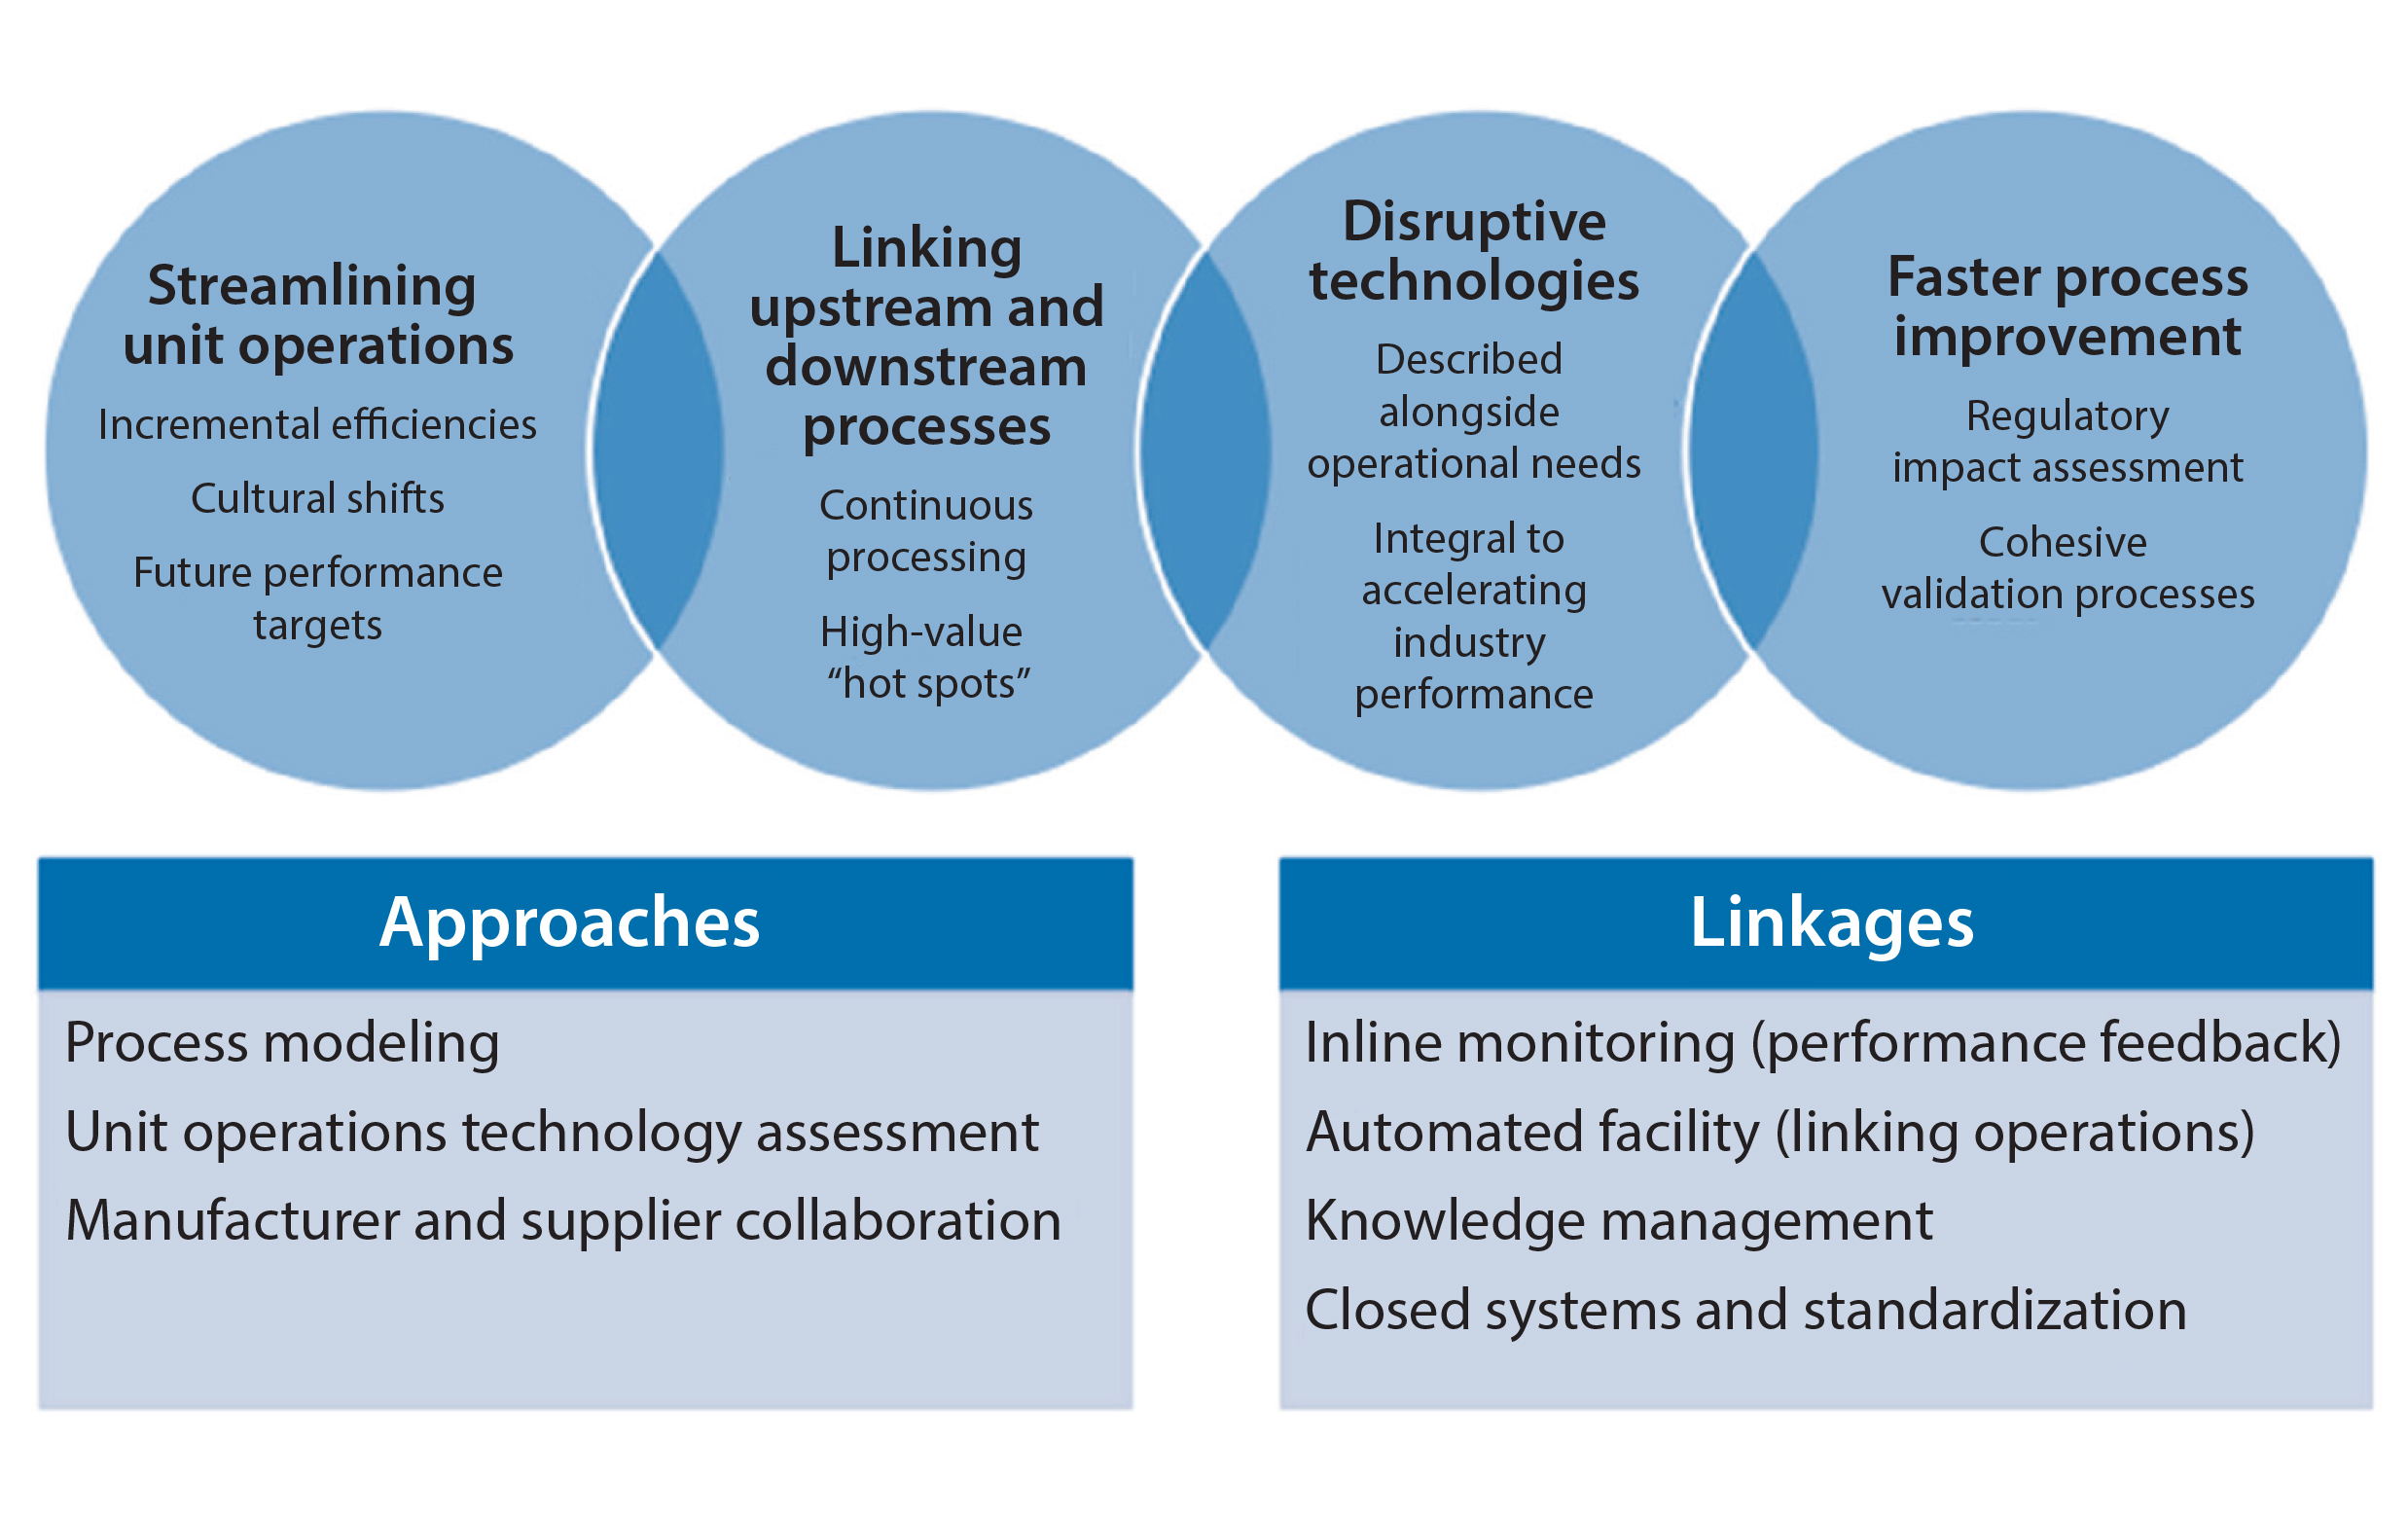 Use Of Technology Management: BioPhorum Operations Group Technology Roadmapping, Part 3